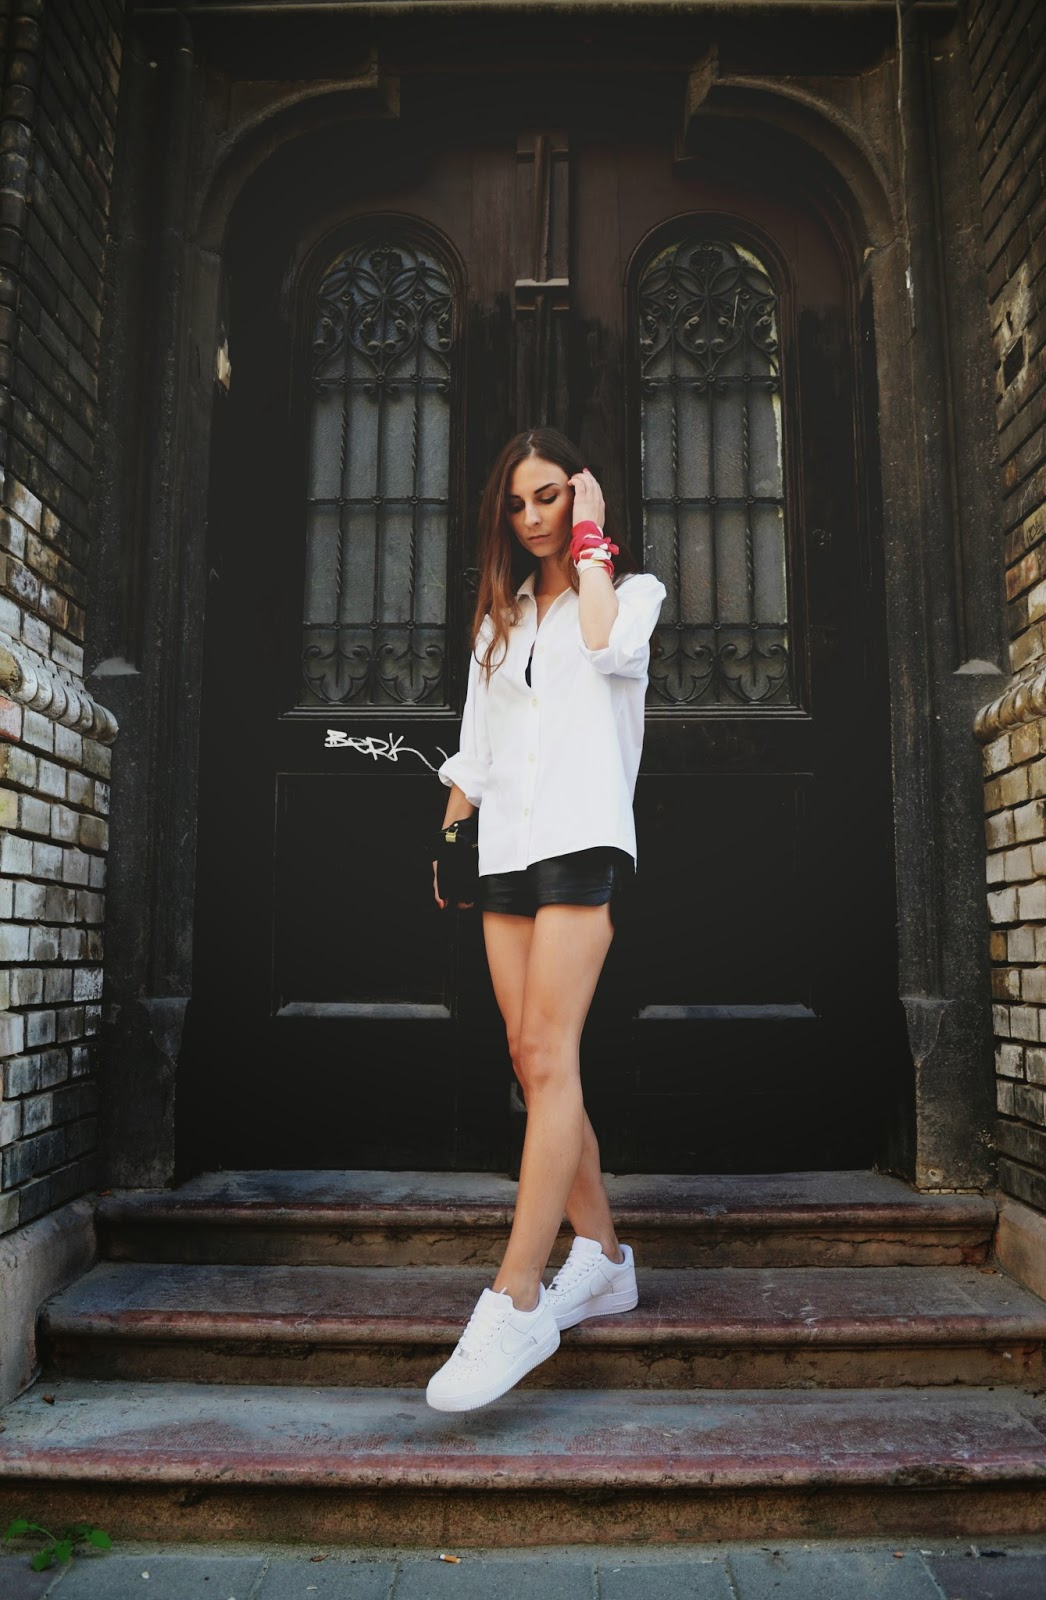 a7b2f46ddfebea Girl Wearing Nike Air Force Shoes Air Max 97 Shady Records